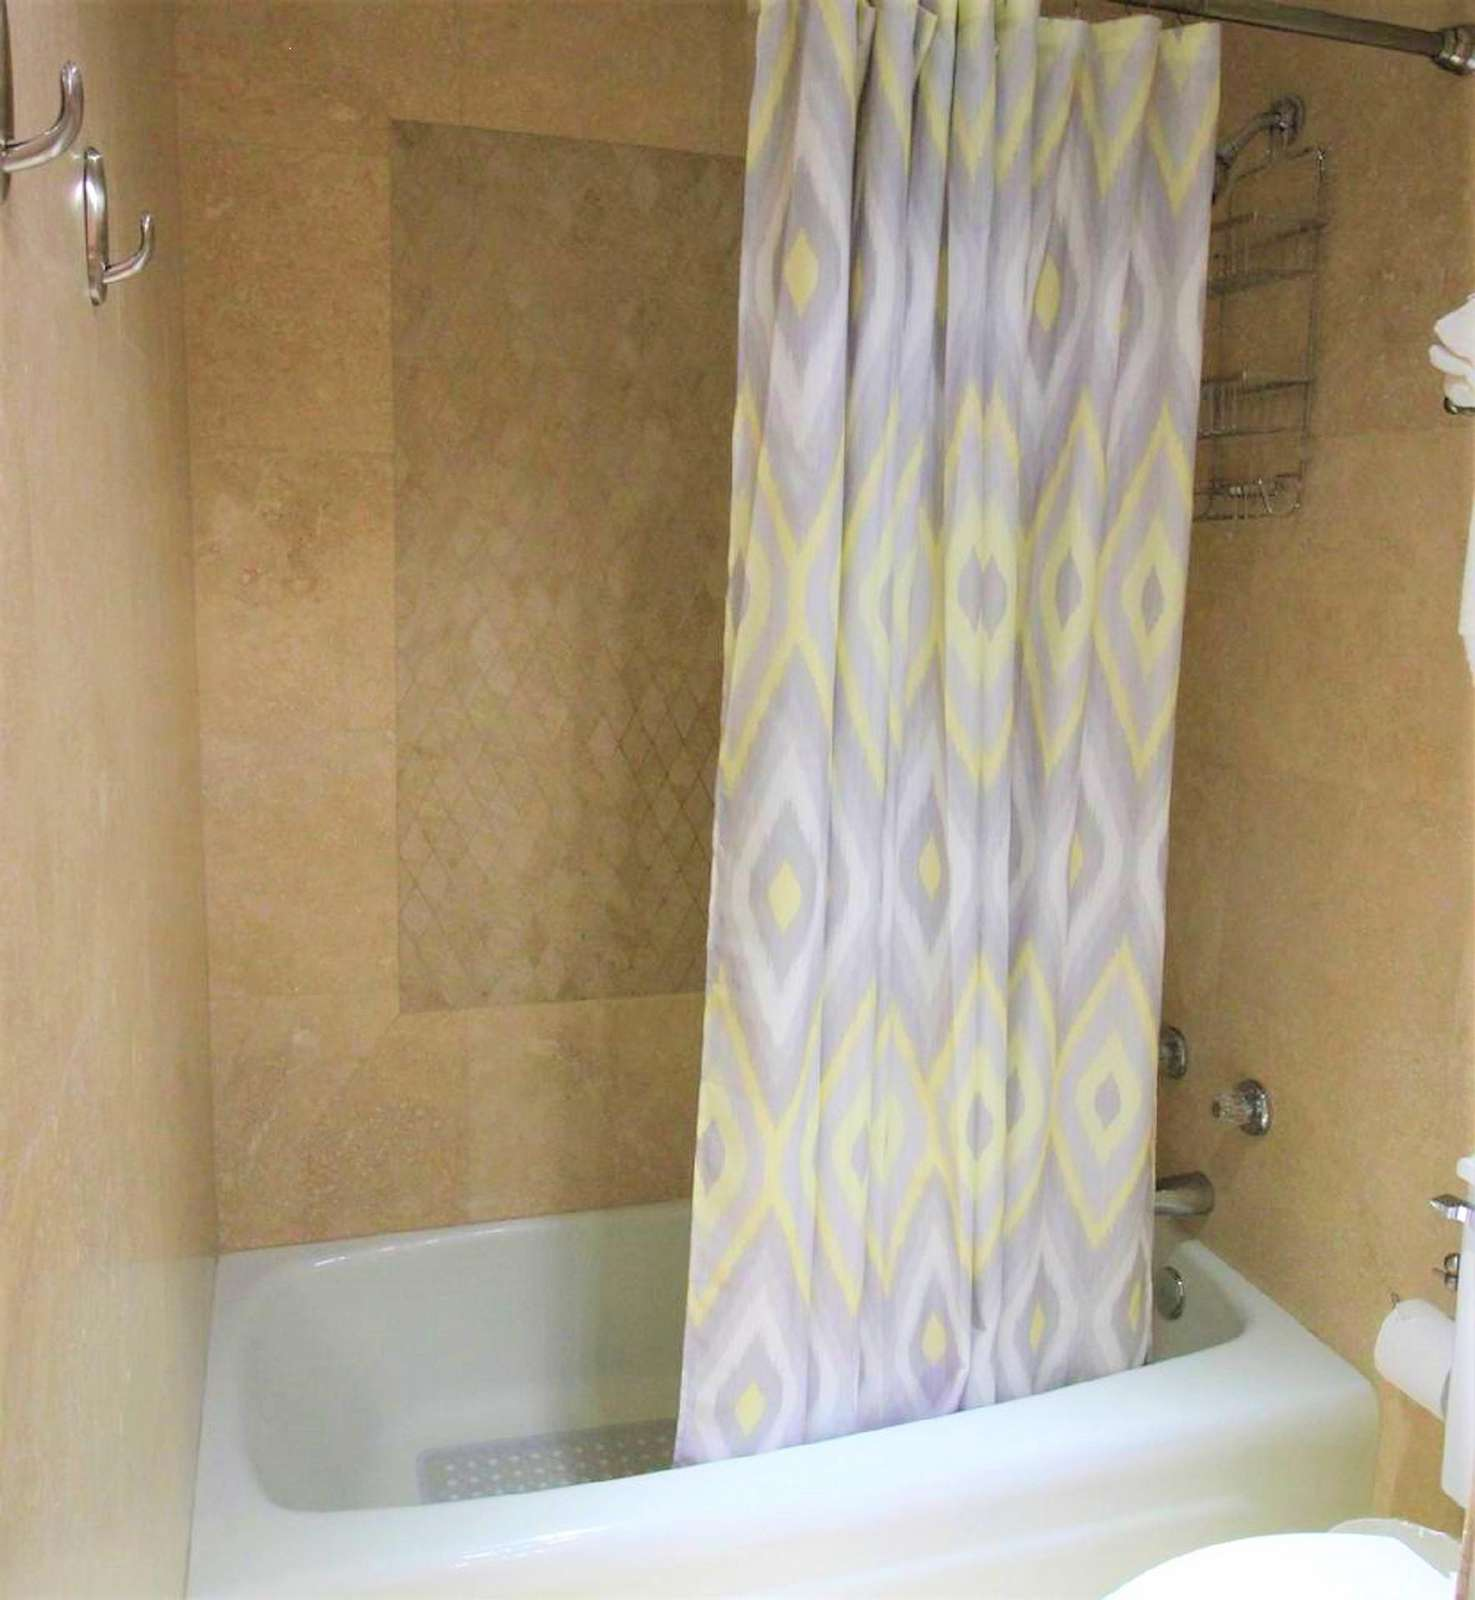 Tub and Shower in Bedroom